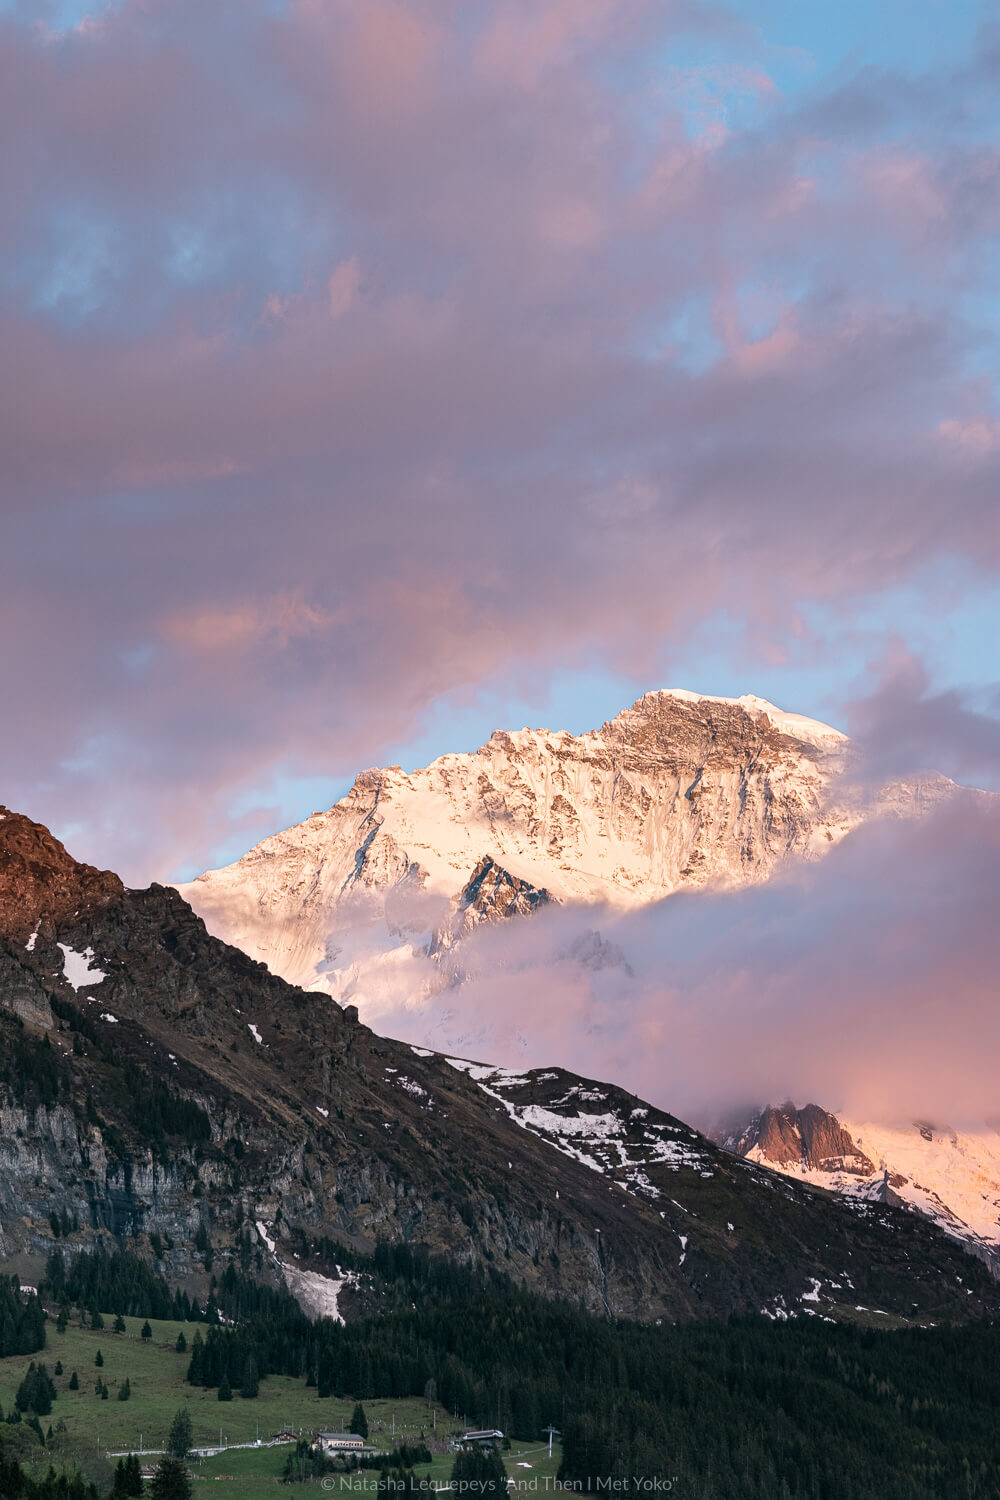 """Sunset in Wengen, Switzerland. Travel photography and guide by © Natasha Lequepeys for """"And Then I Met Yoko"""". #wengen #switzerland #jungfrau #travelphotography #fujifilm"""